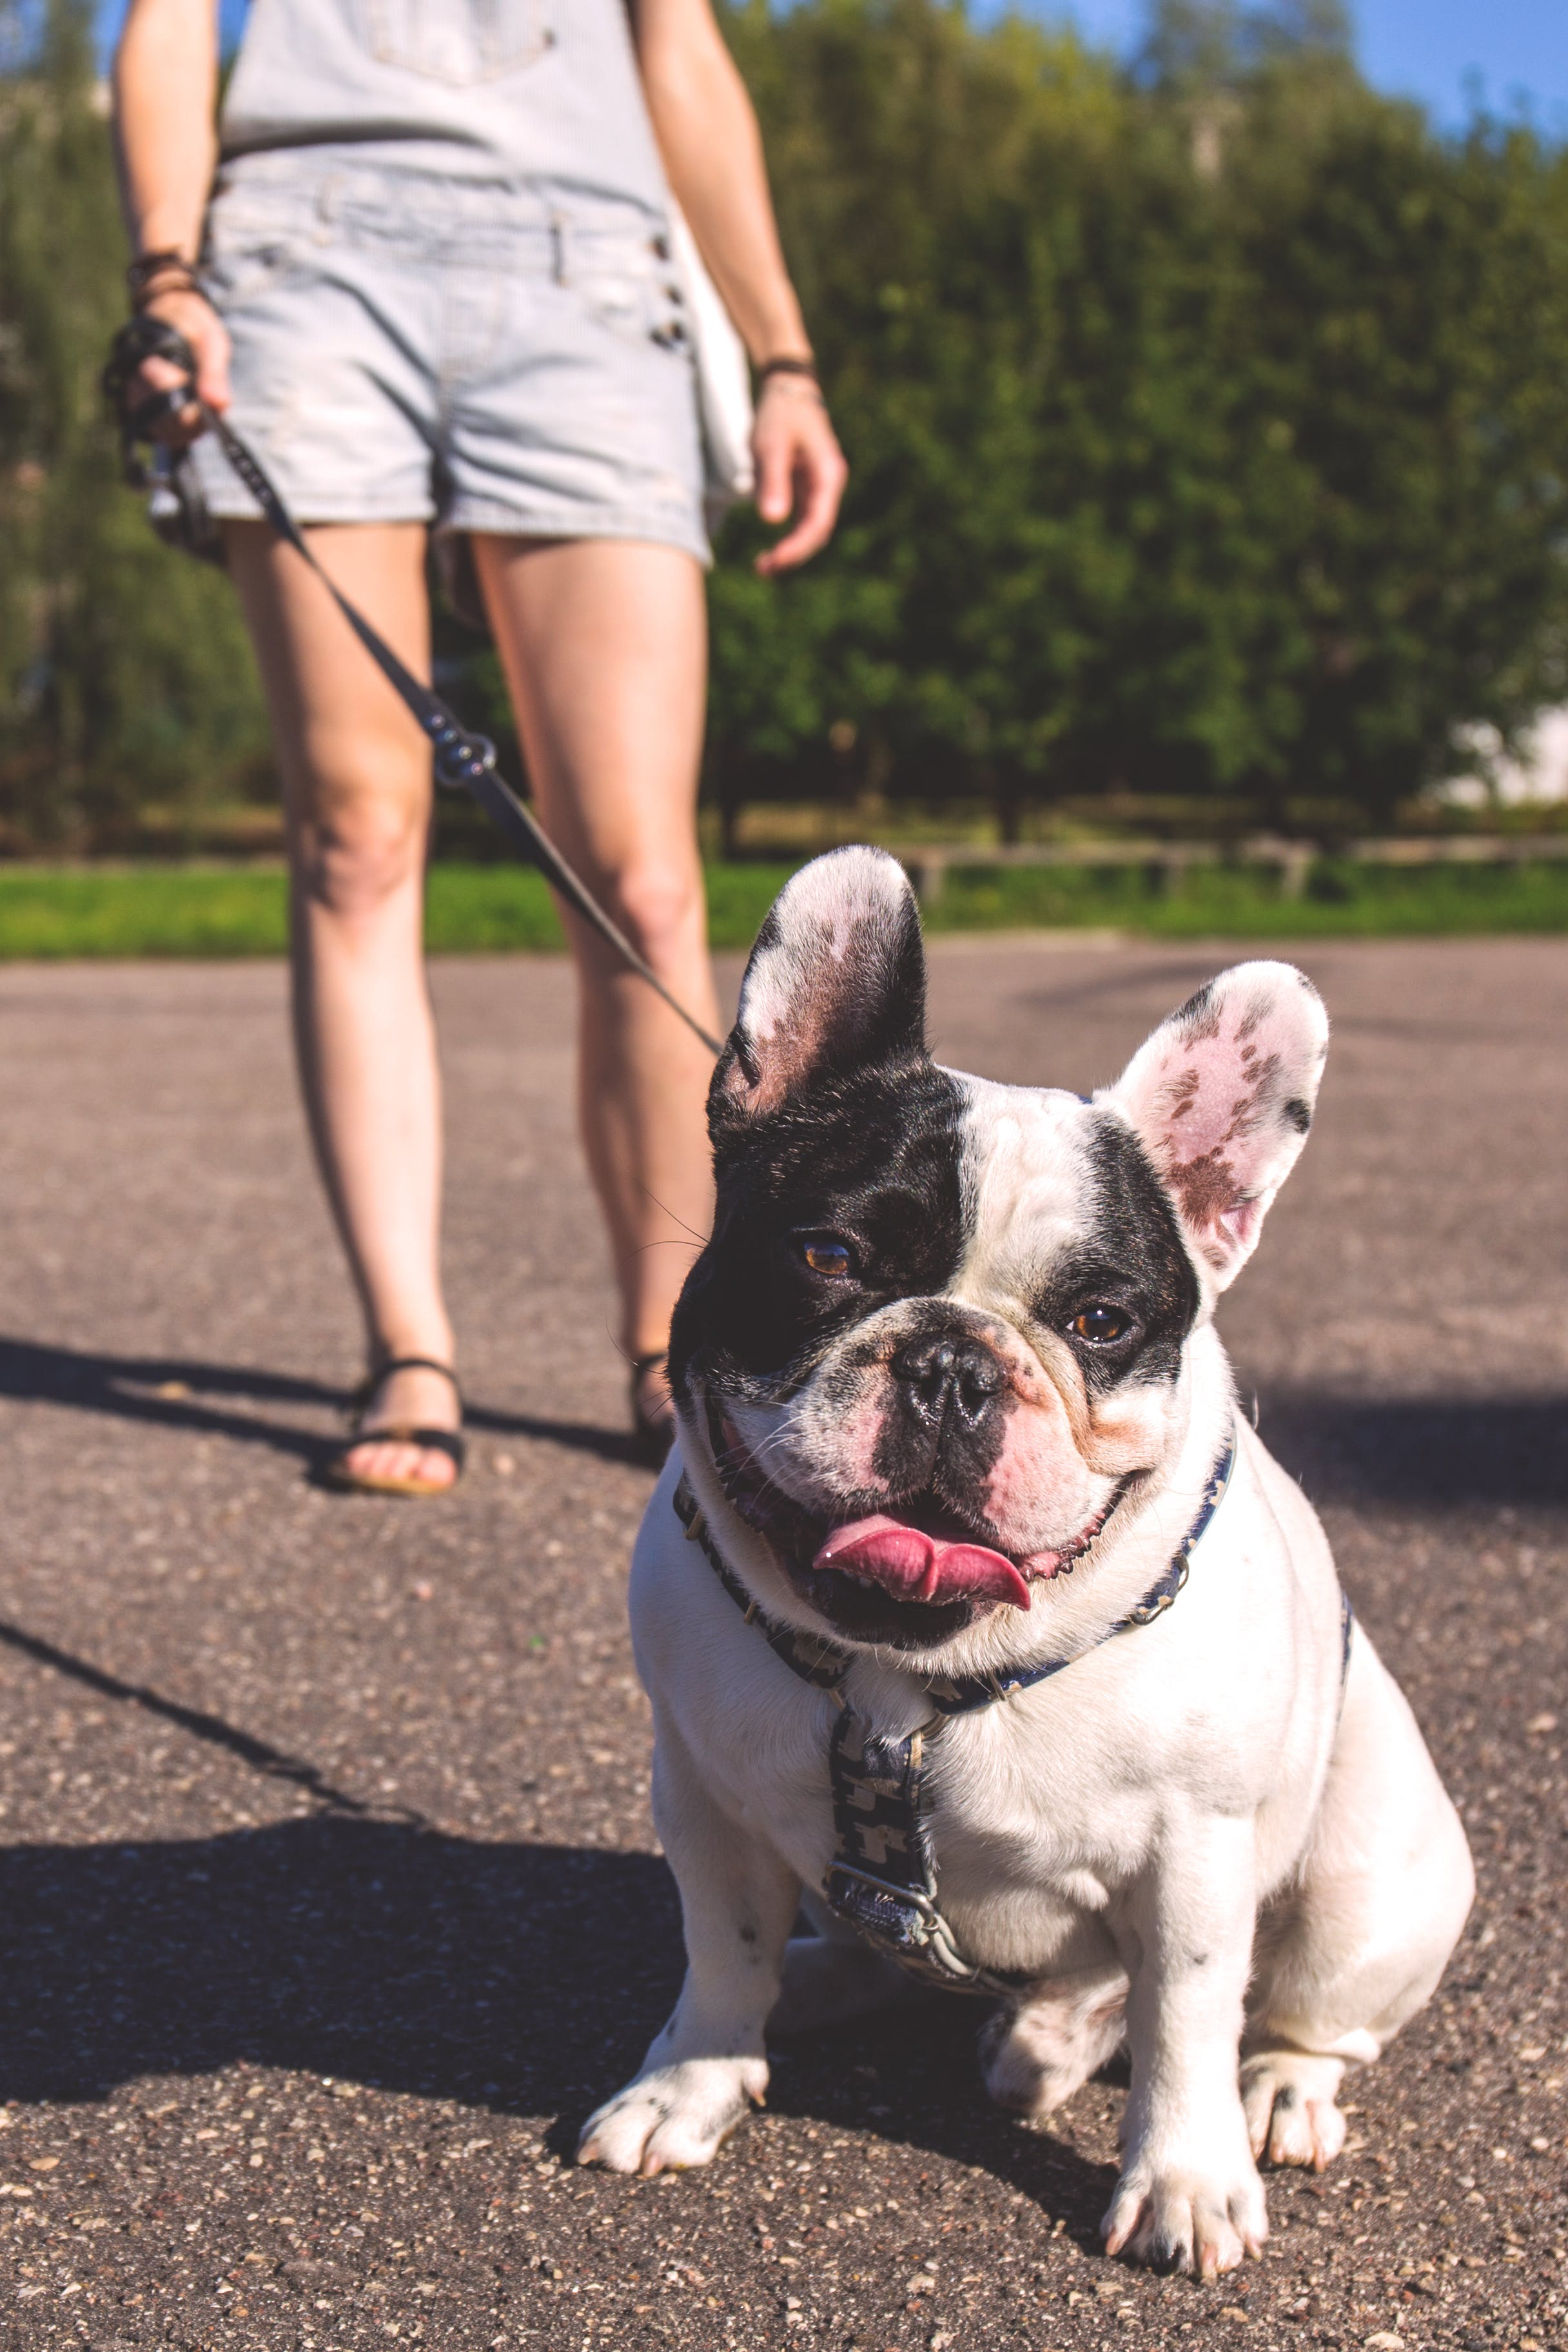 Woman Walking on the Street With Her Black and White Bulldog